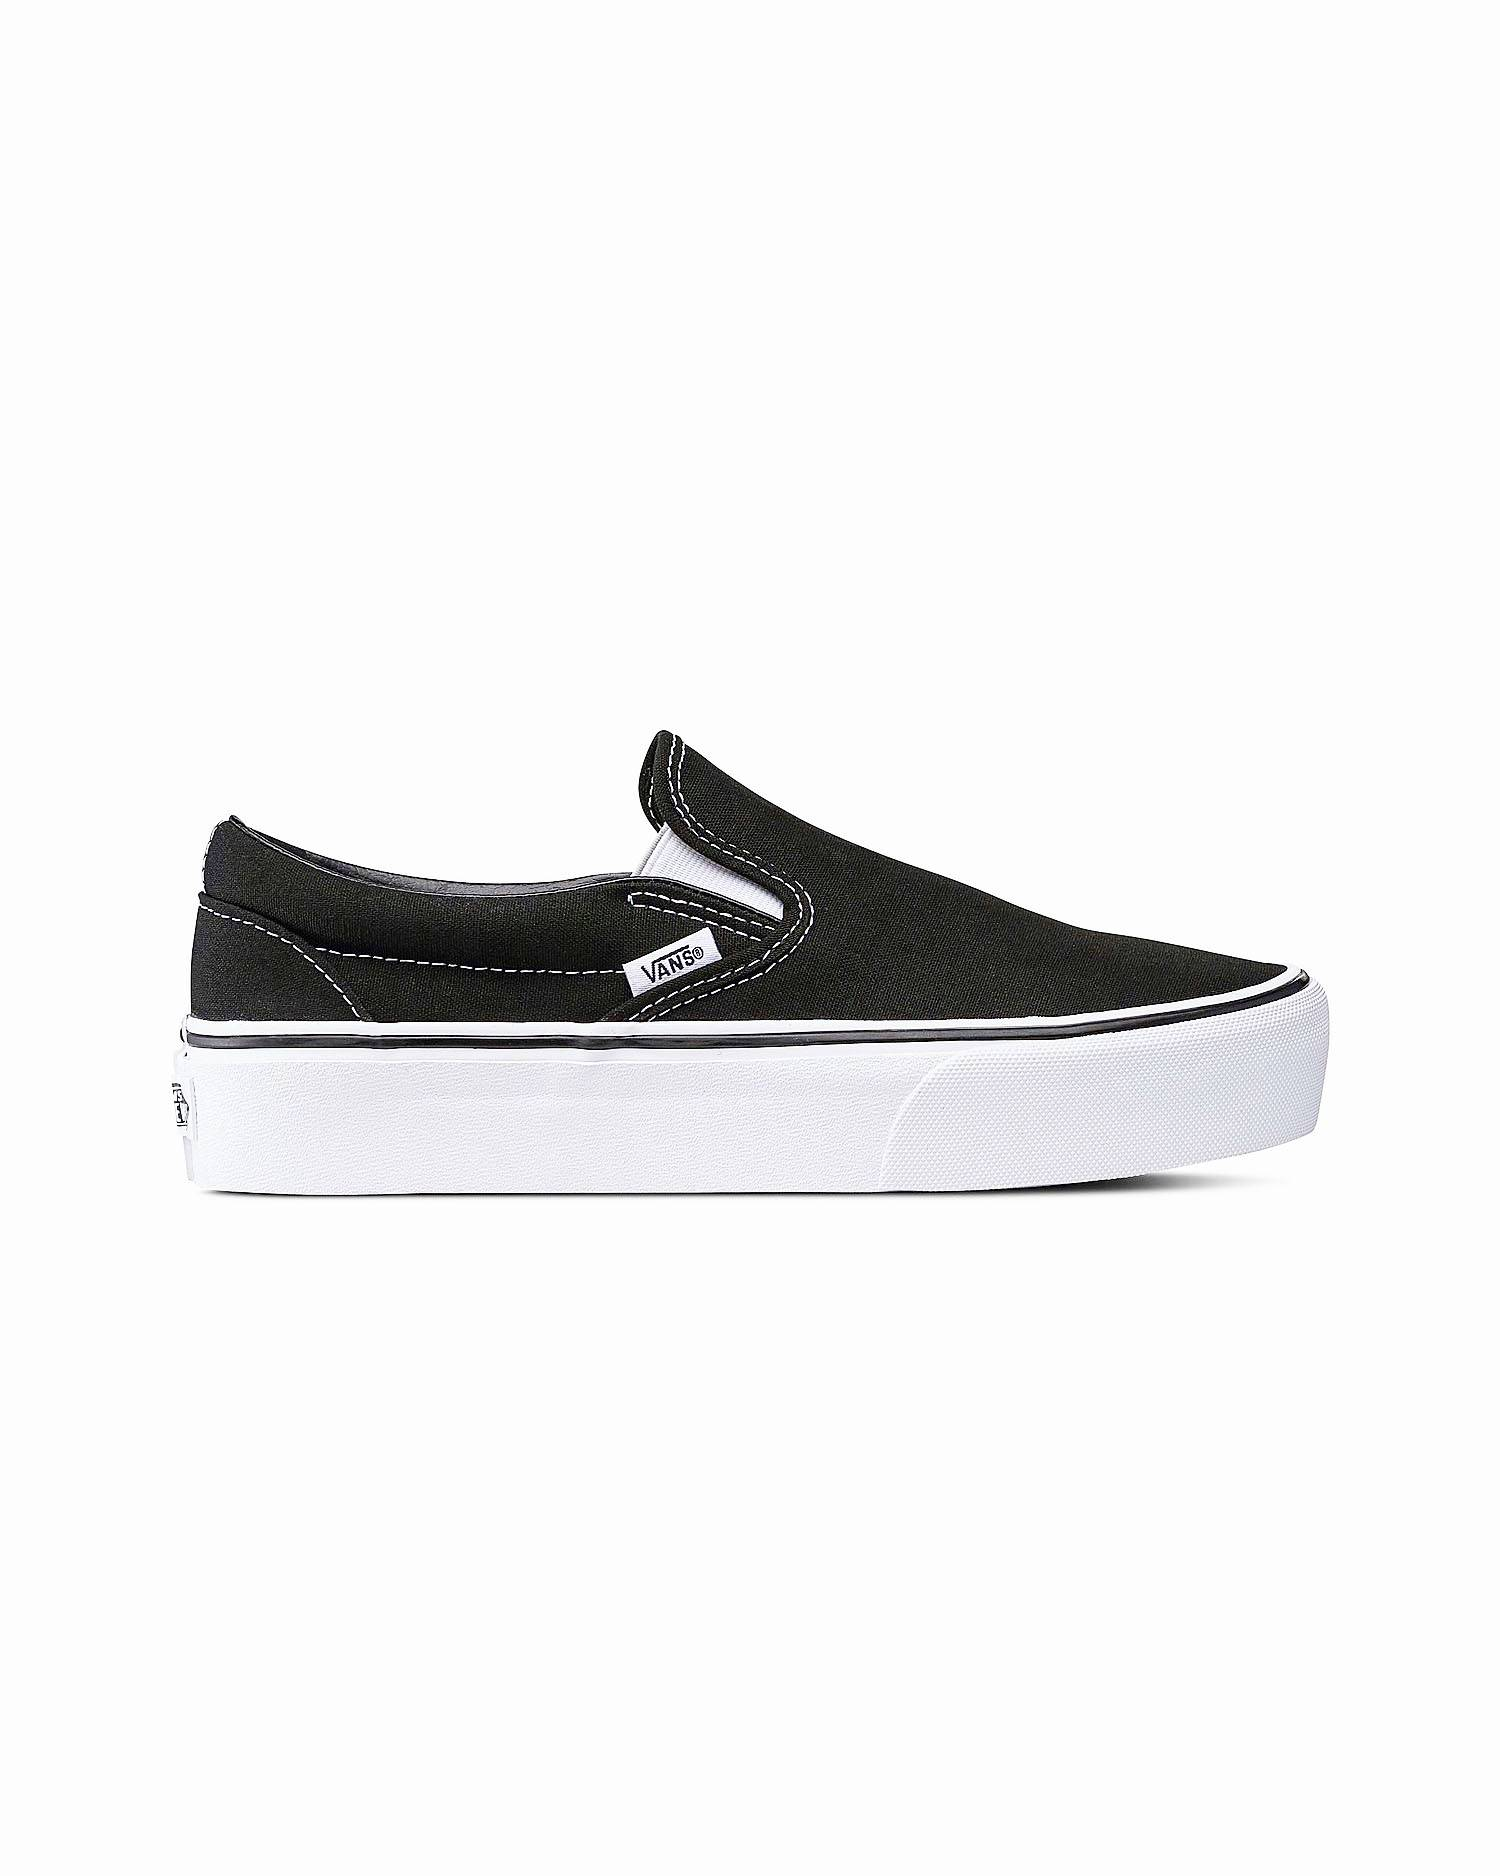 Vans - Classic Slip-On Platform Black 38,5